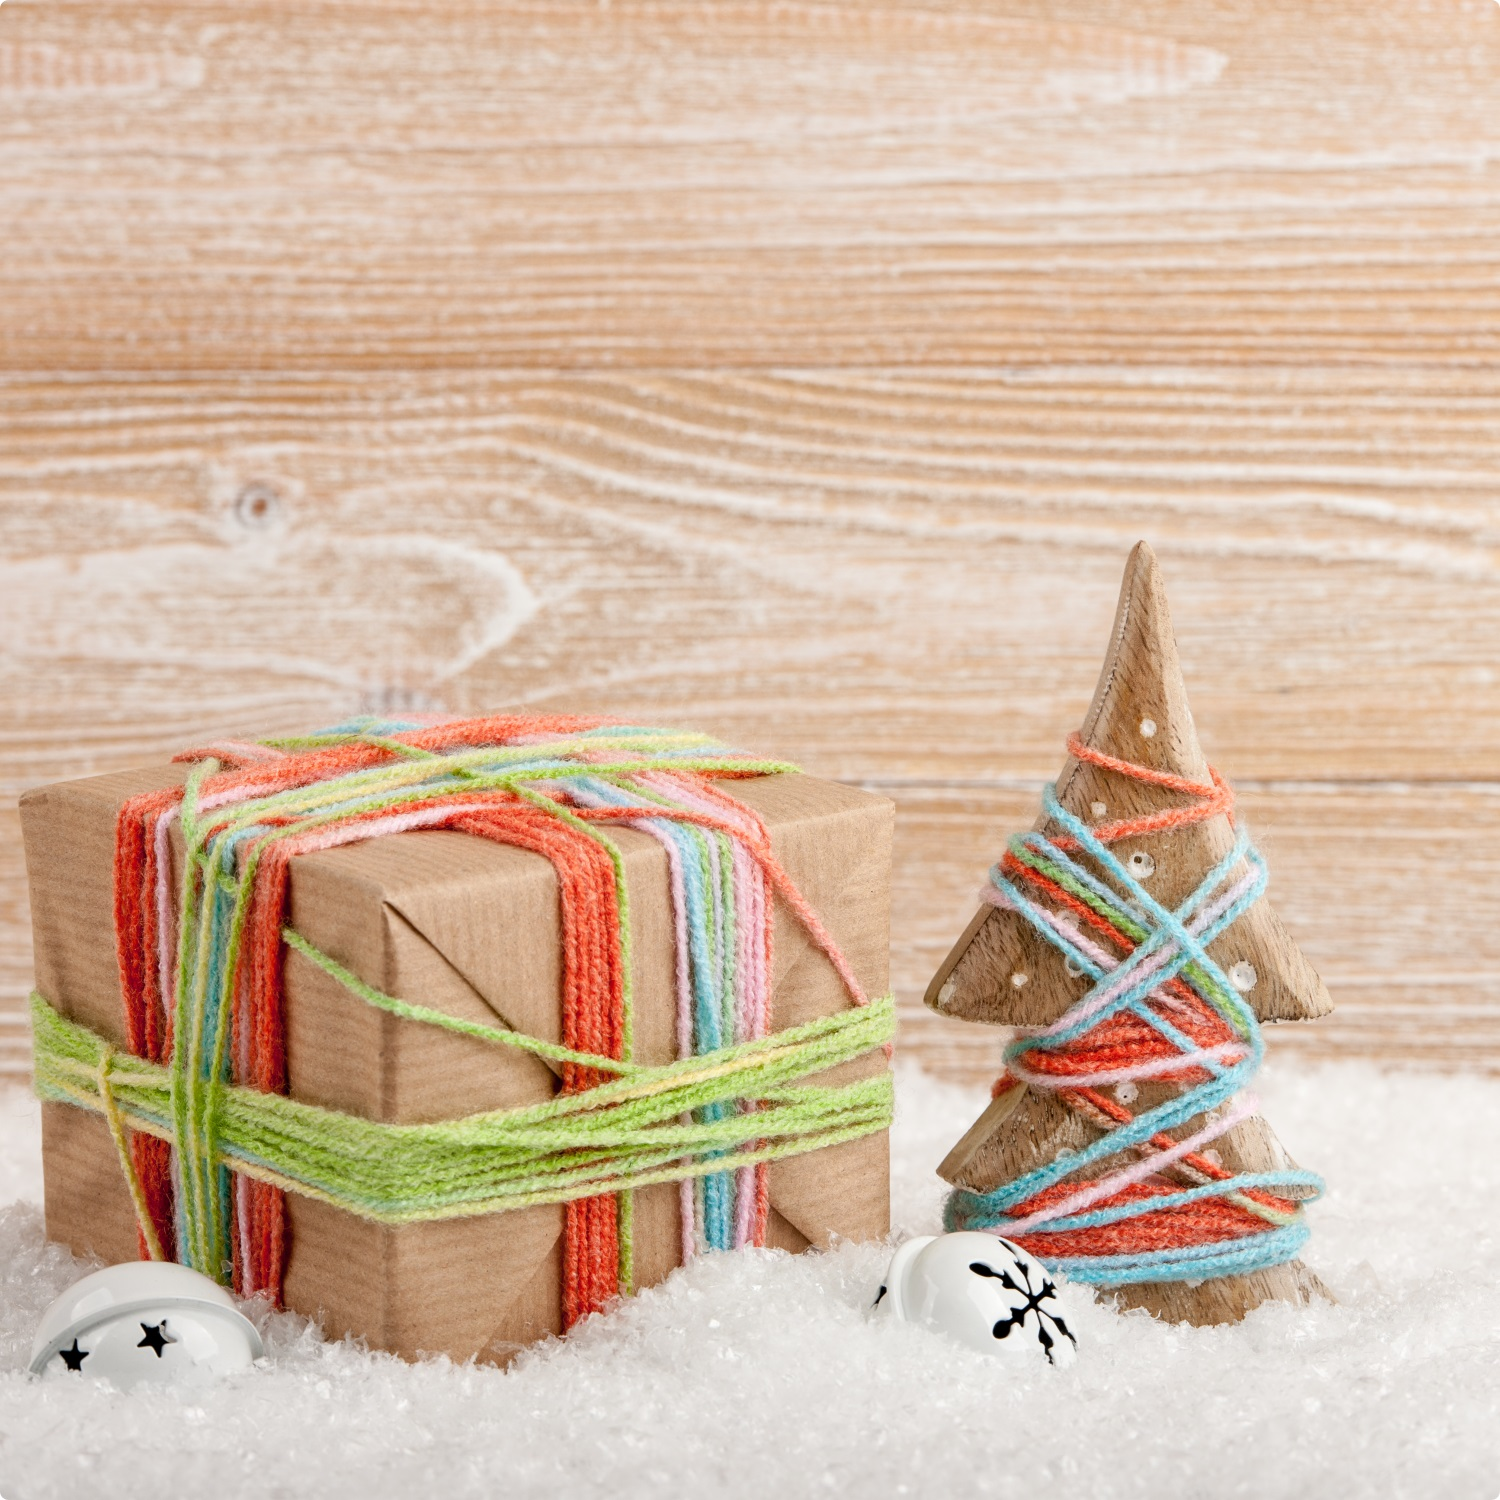 Fun-Activities-For-The-Kids-DIY-Snow-Hamper-World